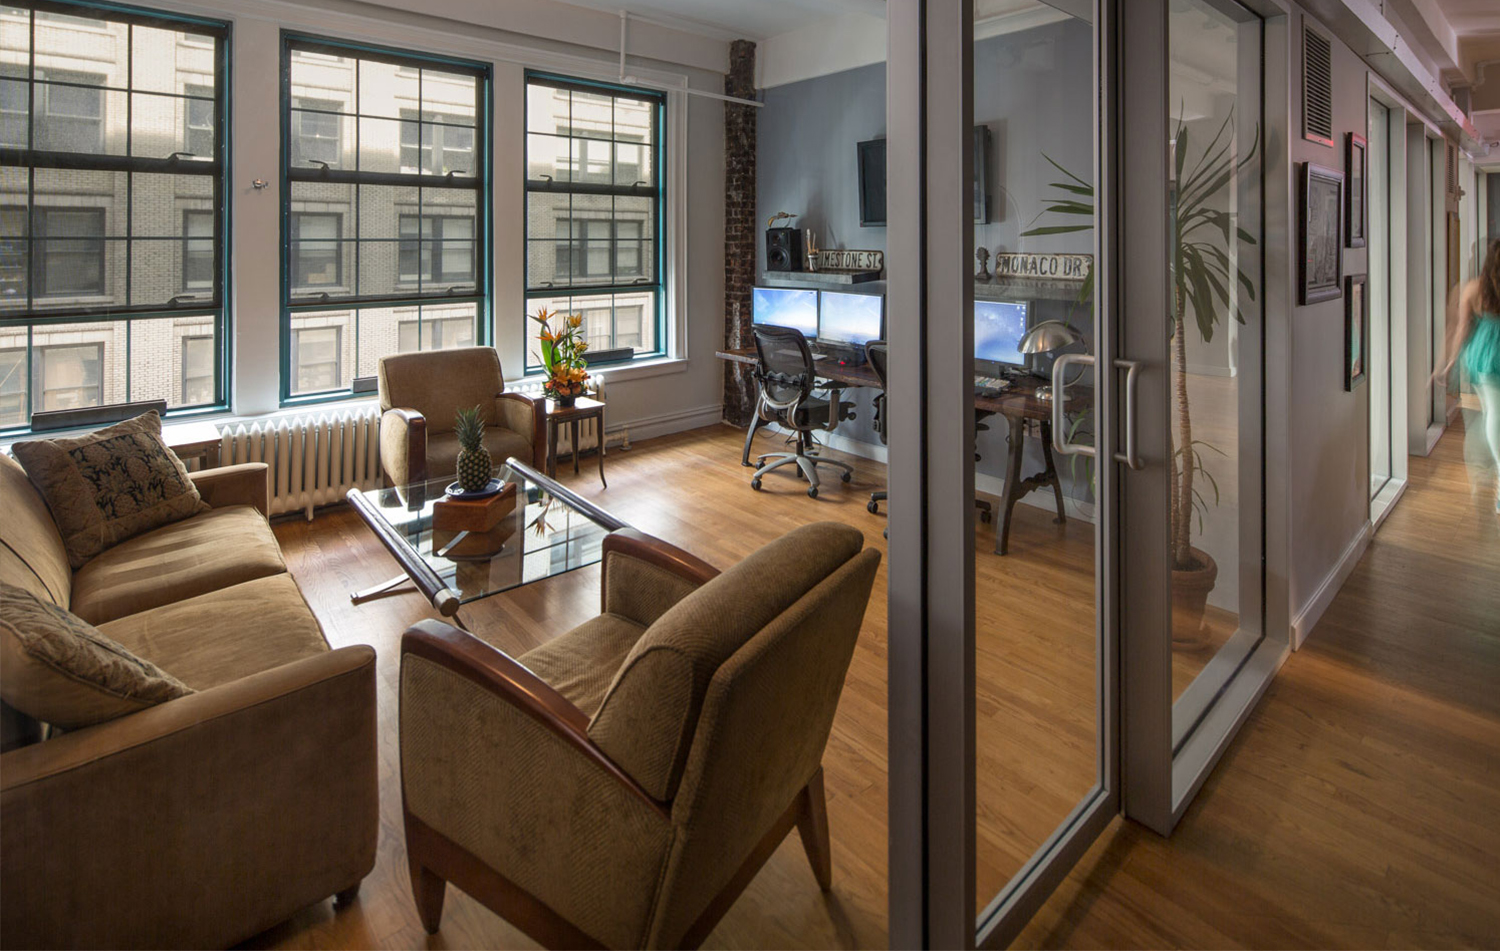 Office space with road signs, large windows, and a lounge area with a pineapple centerpiece in the offices of Napoleon studios, Brooklyn. MEP by 2L Engineering..